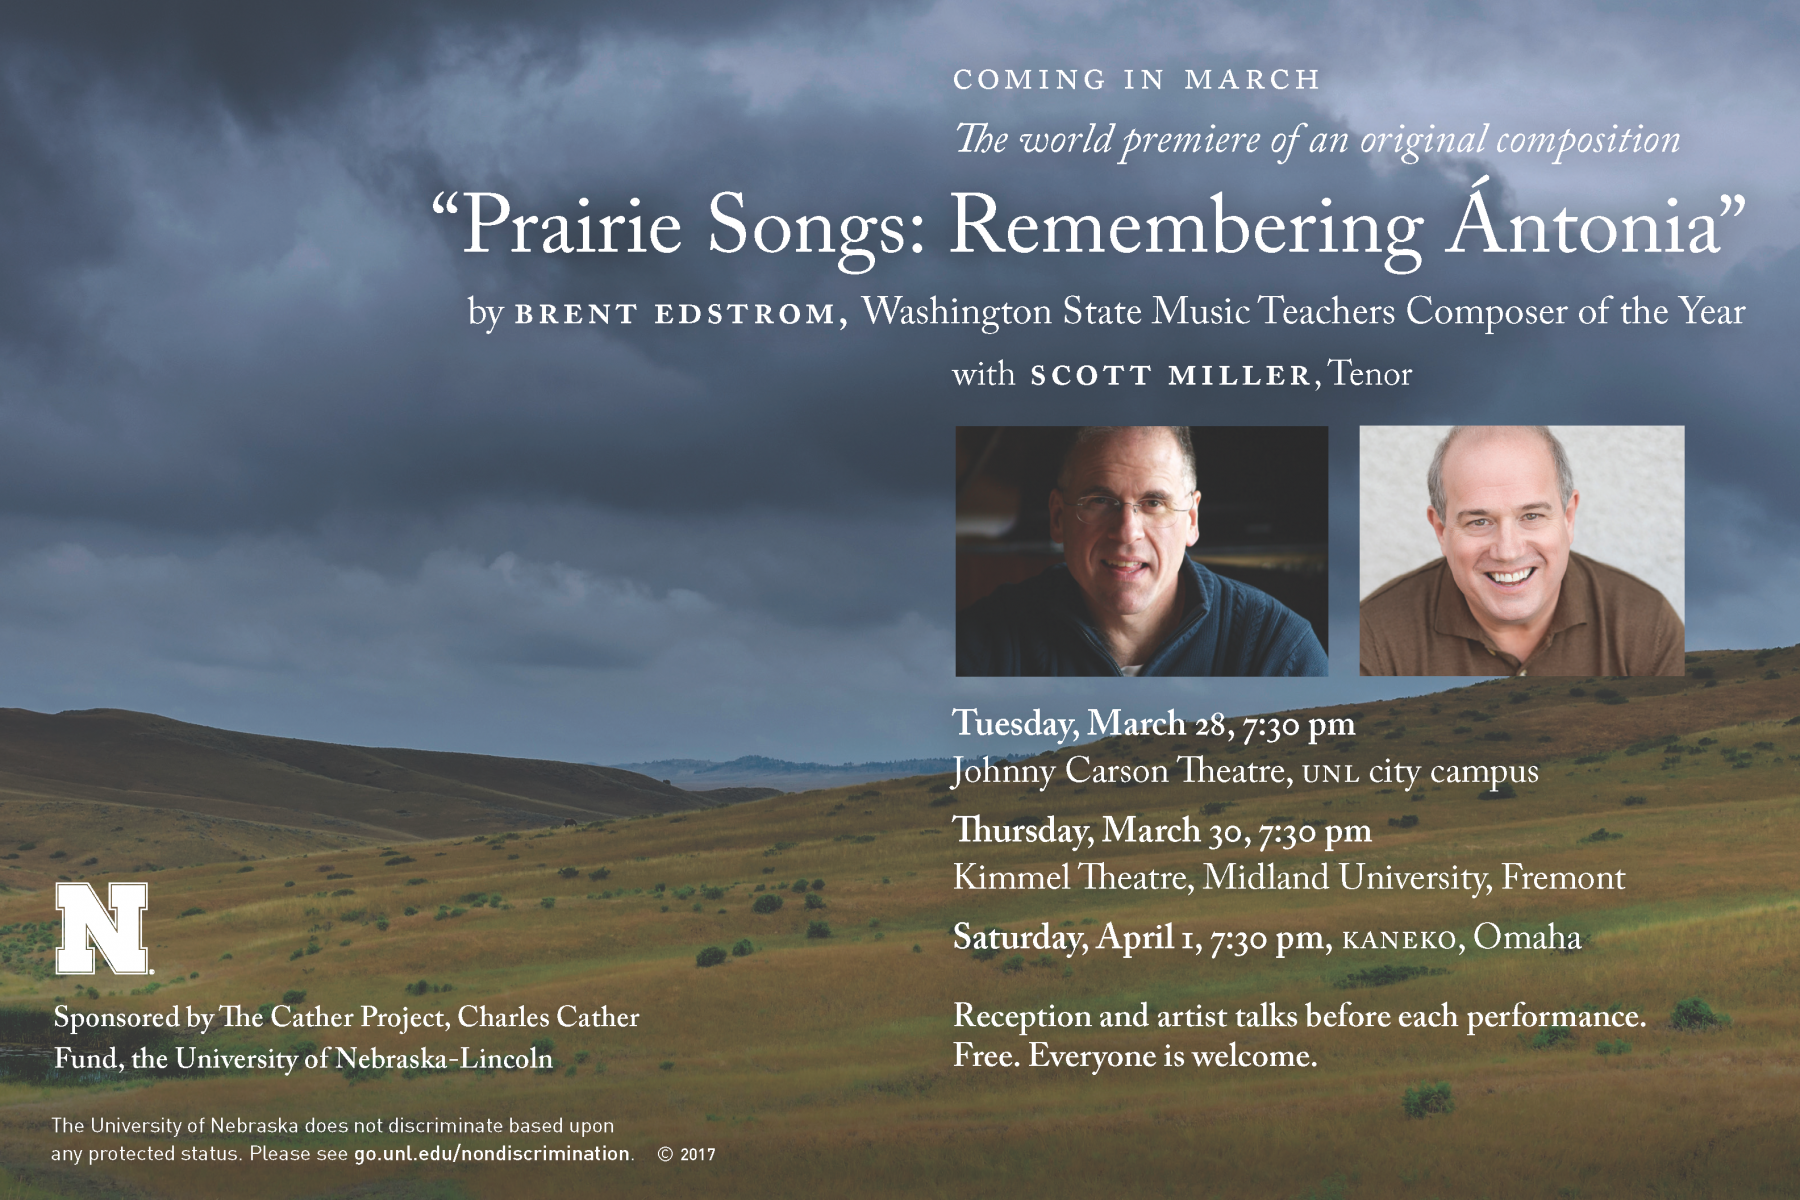 Poster for Prairie Songs concert